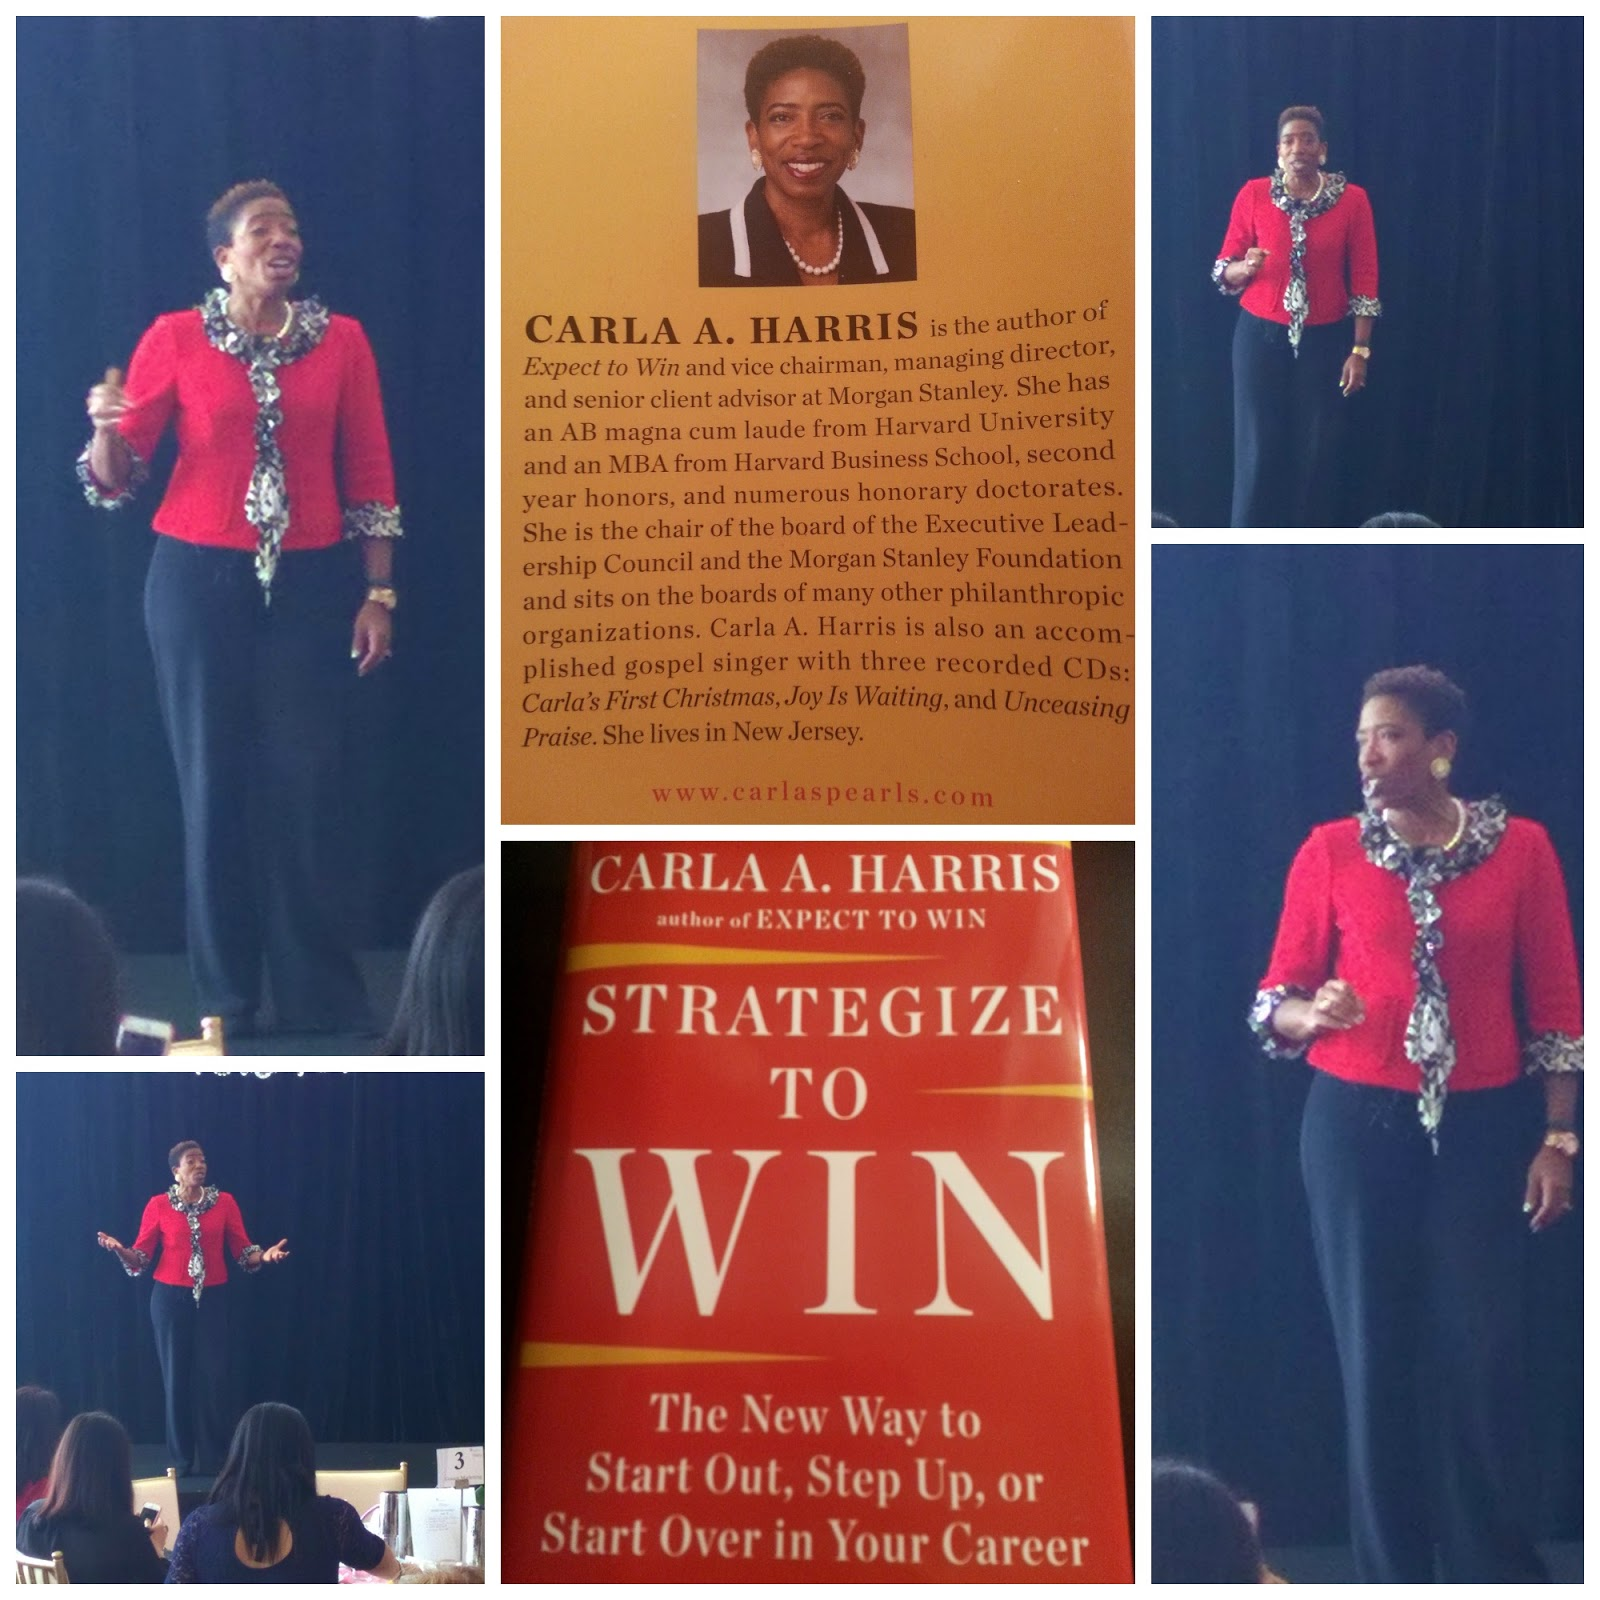 Carla A. Harris Keynote speaker #EWD PGAWomanTour collage